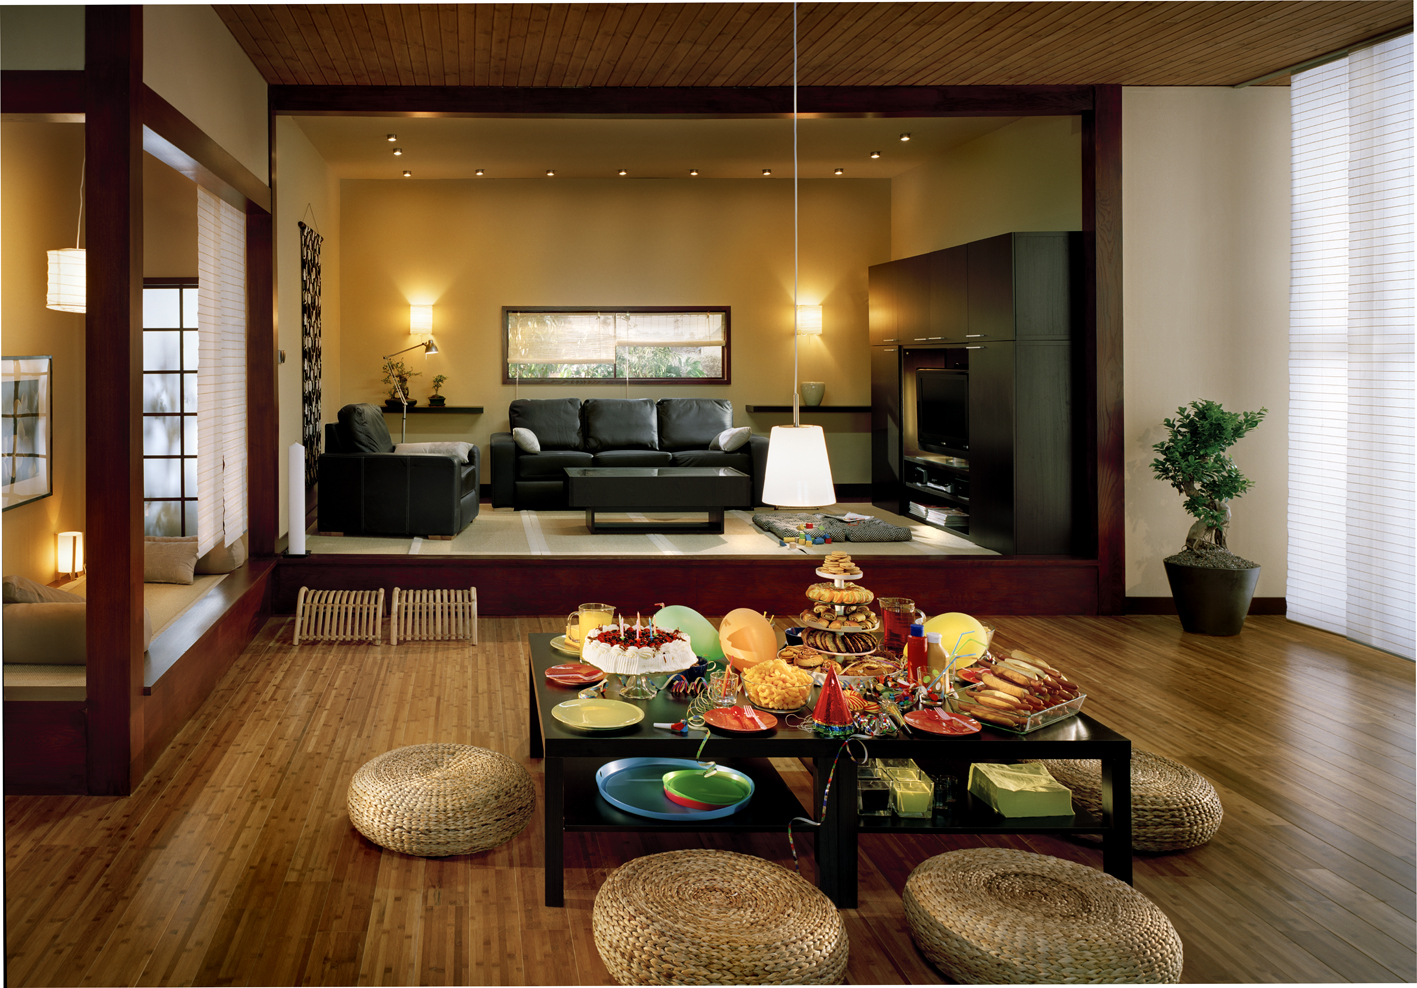 Interior Design Styles Chinese photo - 2